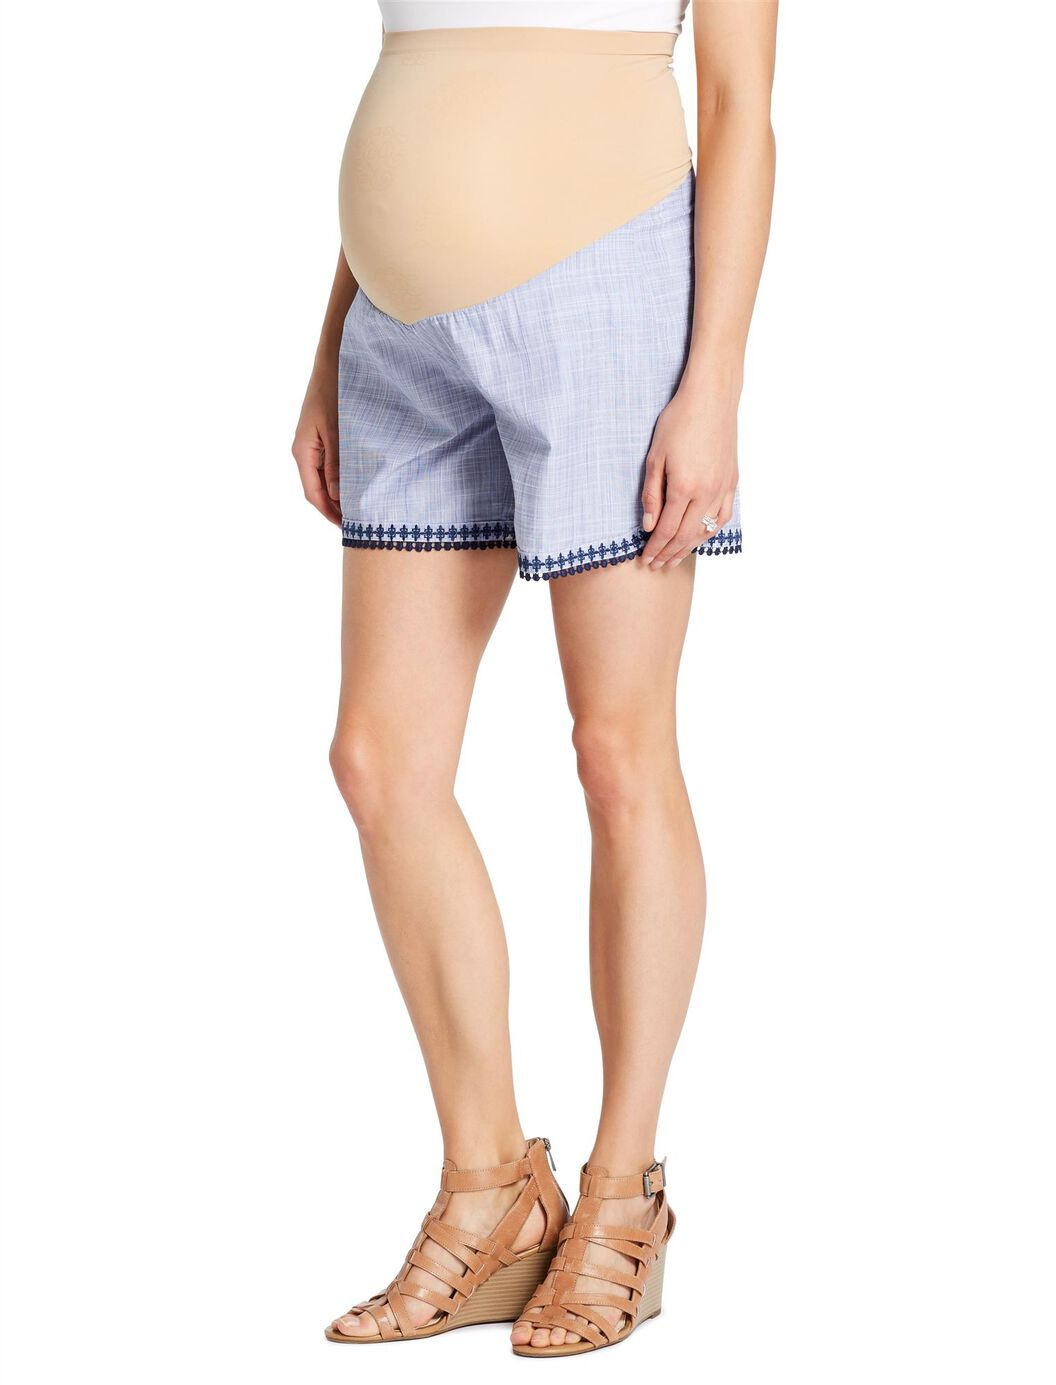 Jessica Simpson Secret Fit Belly Embroidered Trim Maternity Shorts at Motherhood Maternity in Victor, NY | Tuggl